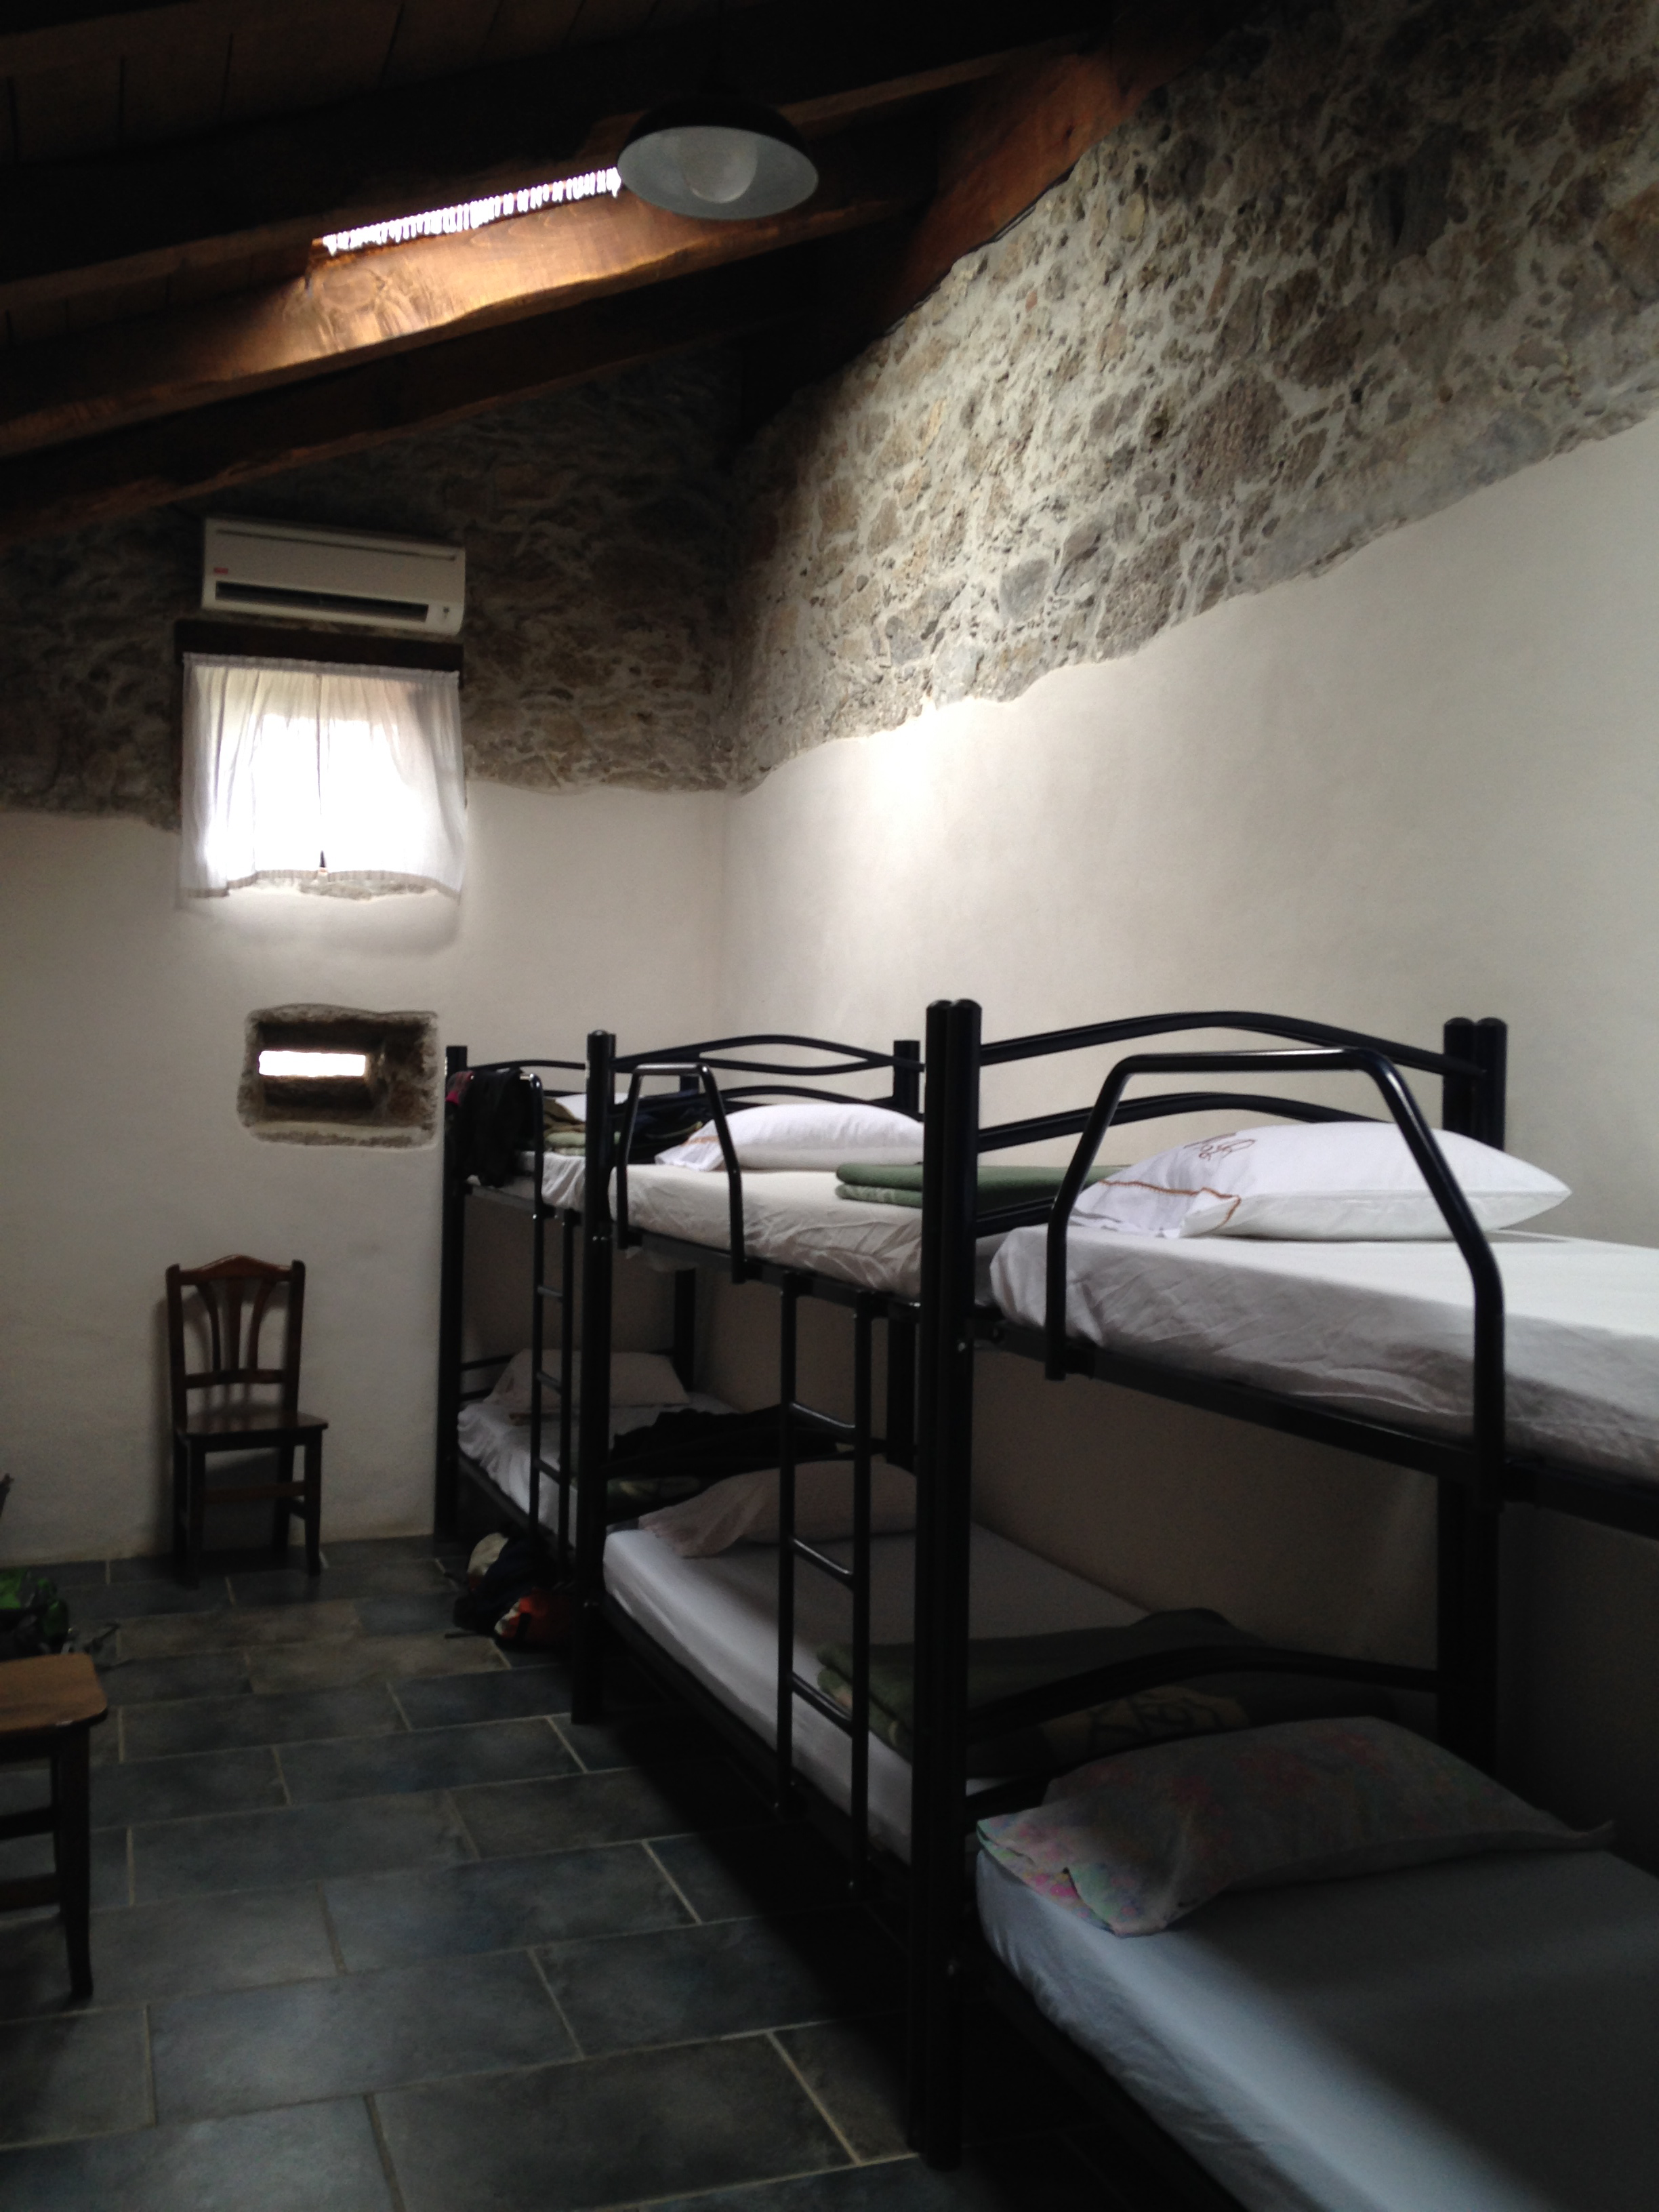 bunk beds in an albergue